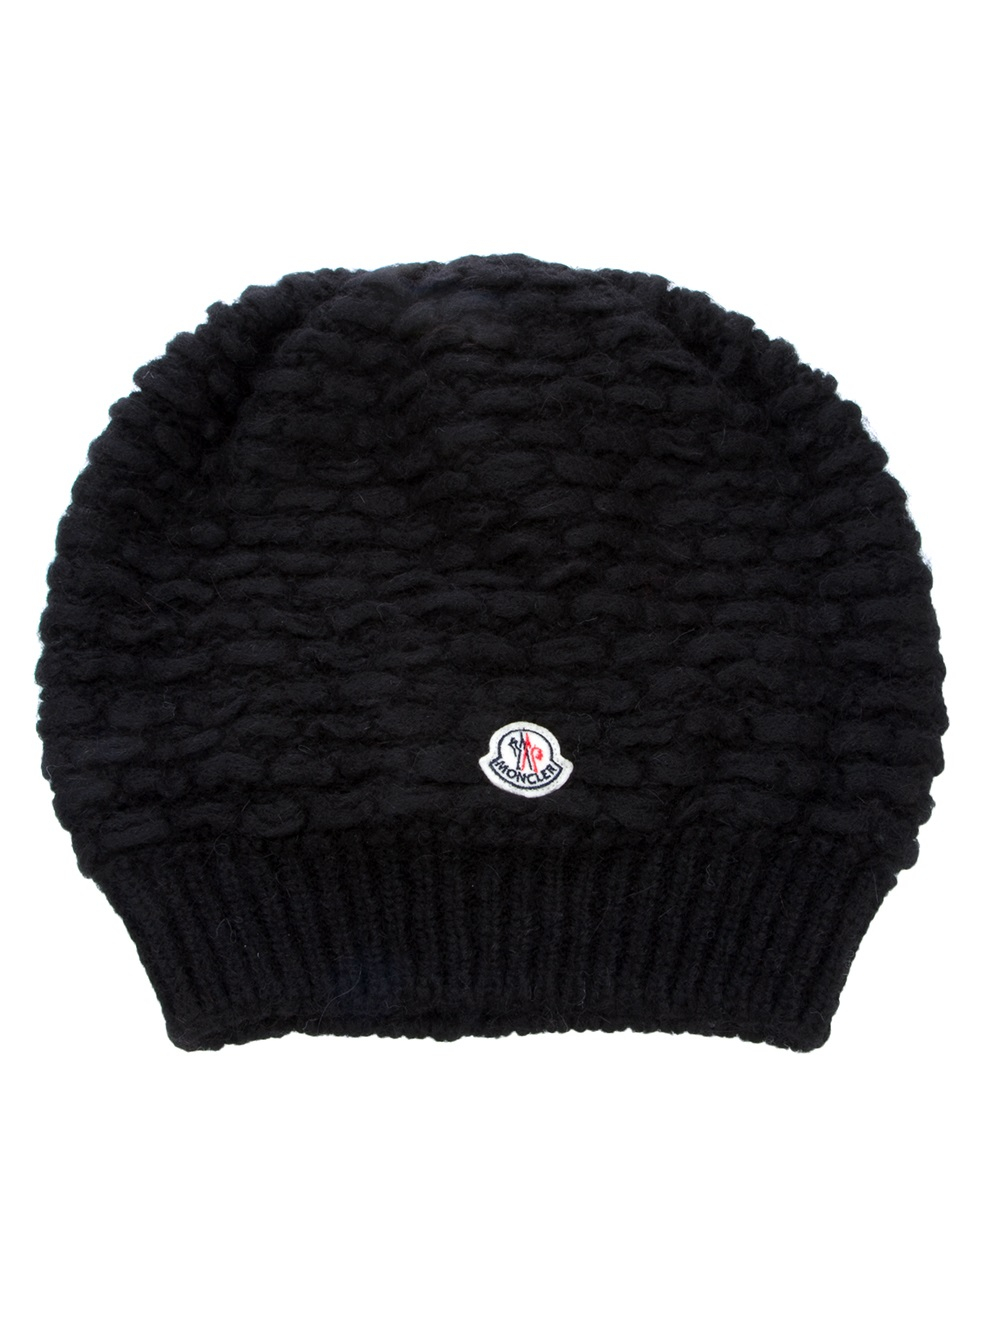 Lyst - Moncler Slouchy Beanie Hat in Black 70e01f84705